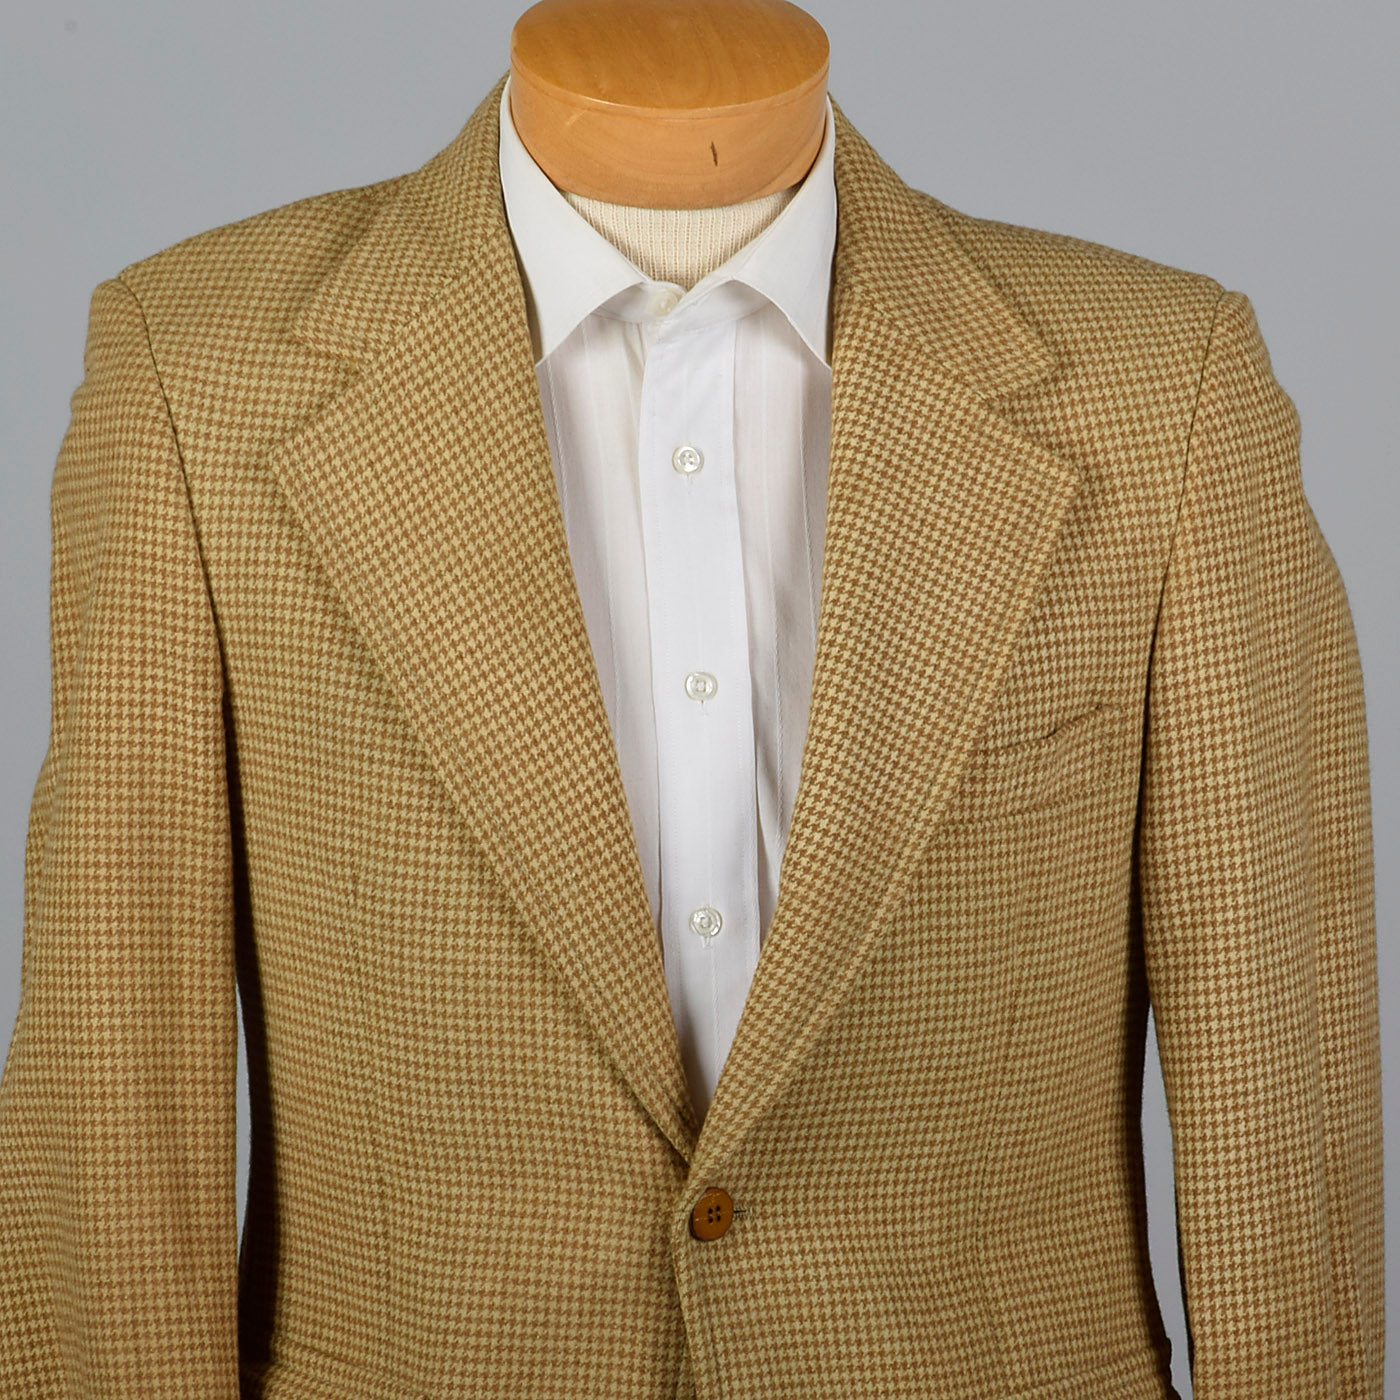 1970s Mens Houndstooth Blazer in Brown Wool